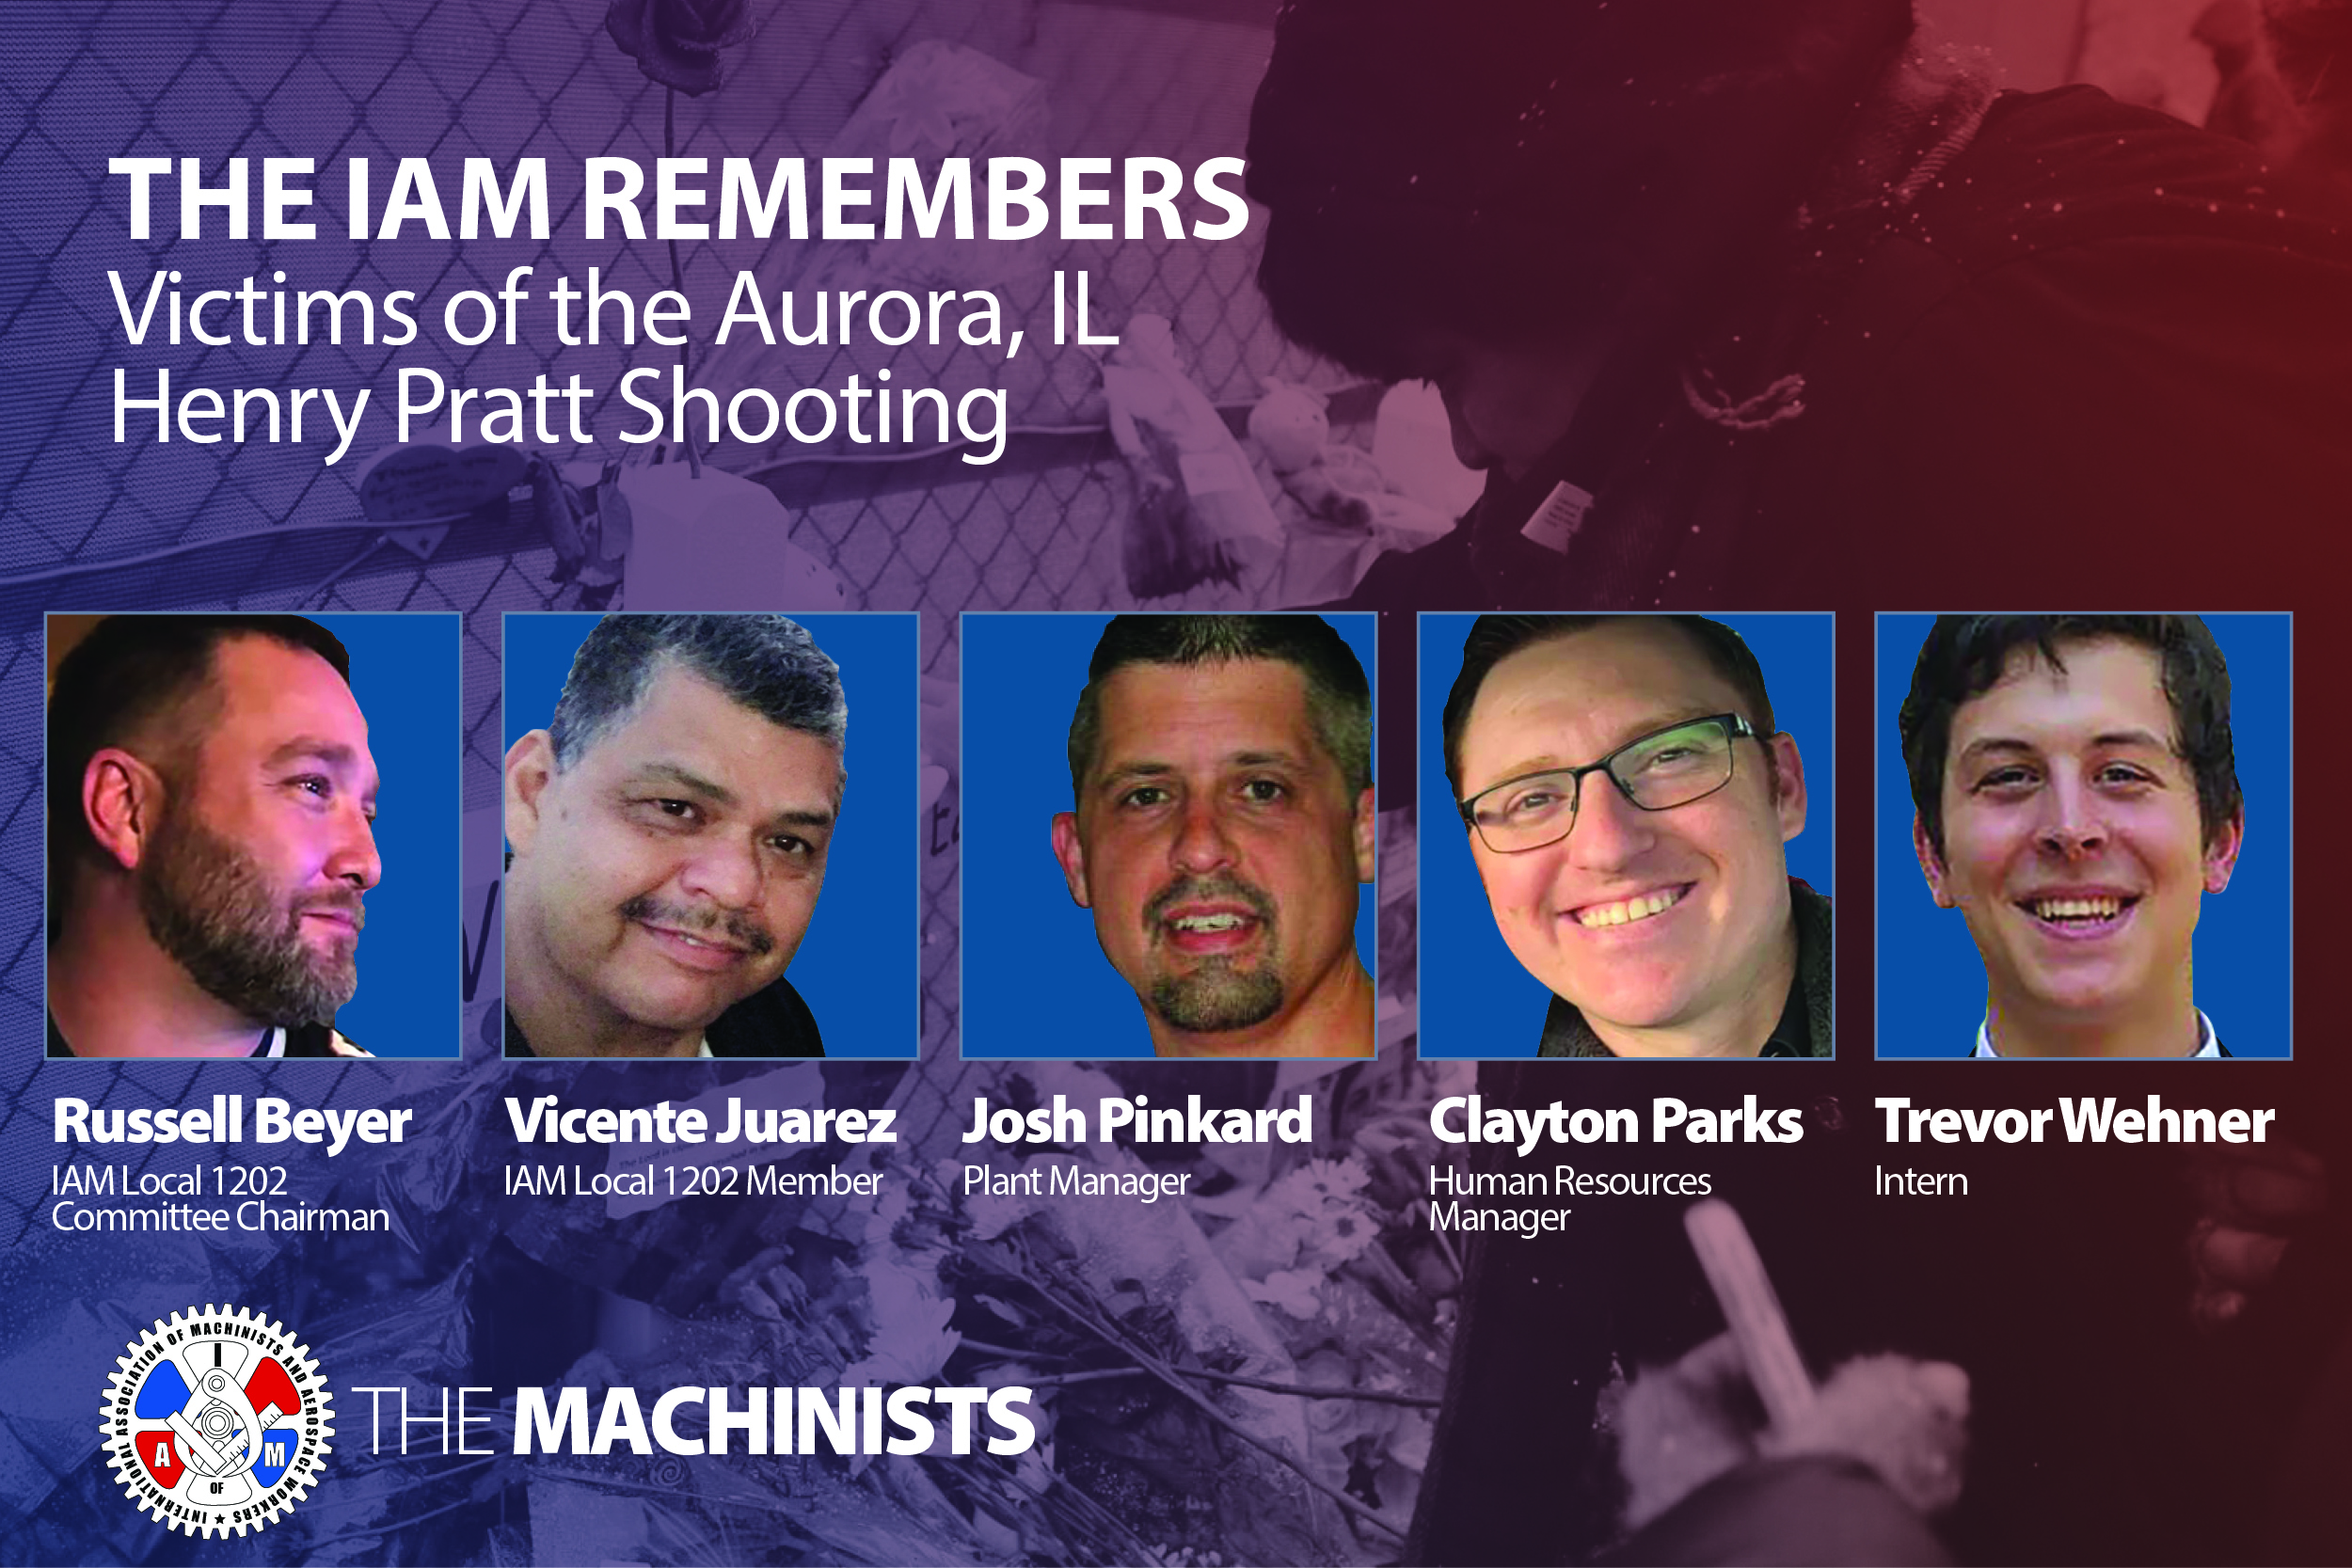 The IAM Remembers Victims of the Aurora, IL Henry Pratt Shooting